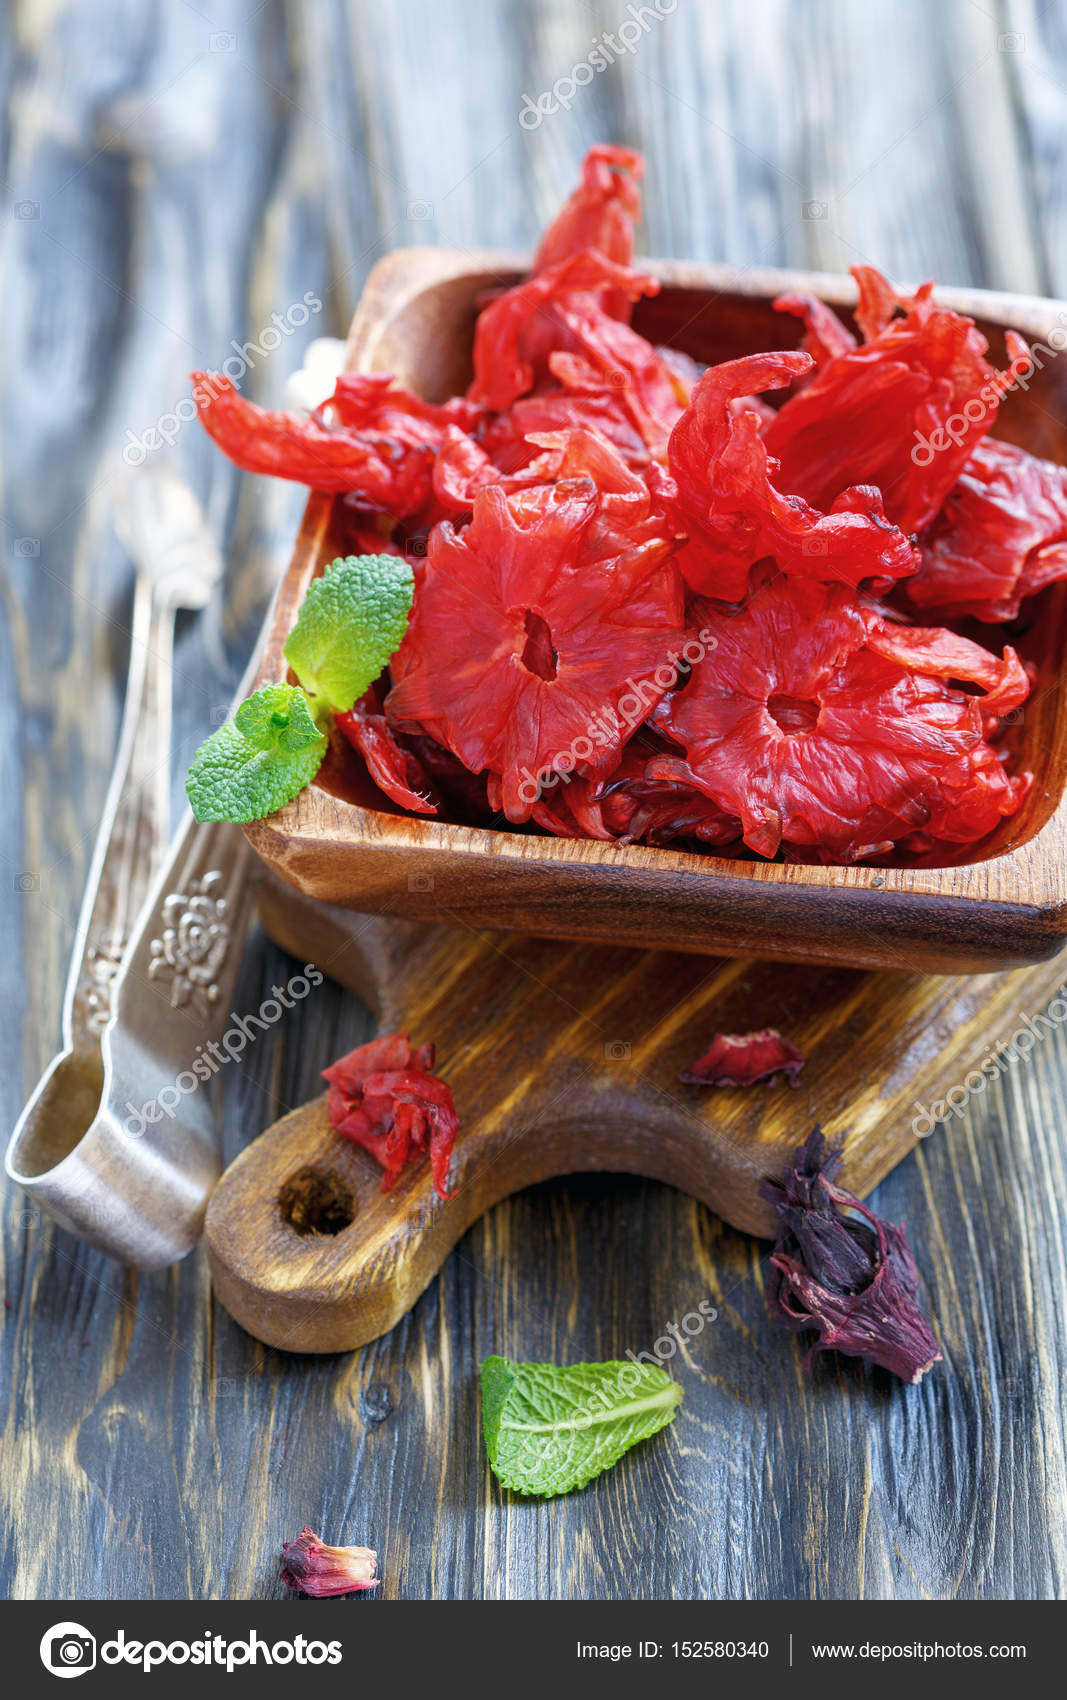 Dried hibiscus flowers in a wooden bowl stock photo sriba3 dried hibiscus flowers in a wooden bowl stock photo izmirmasajfo